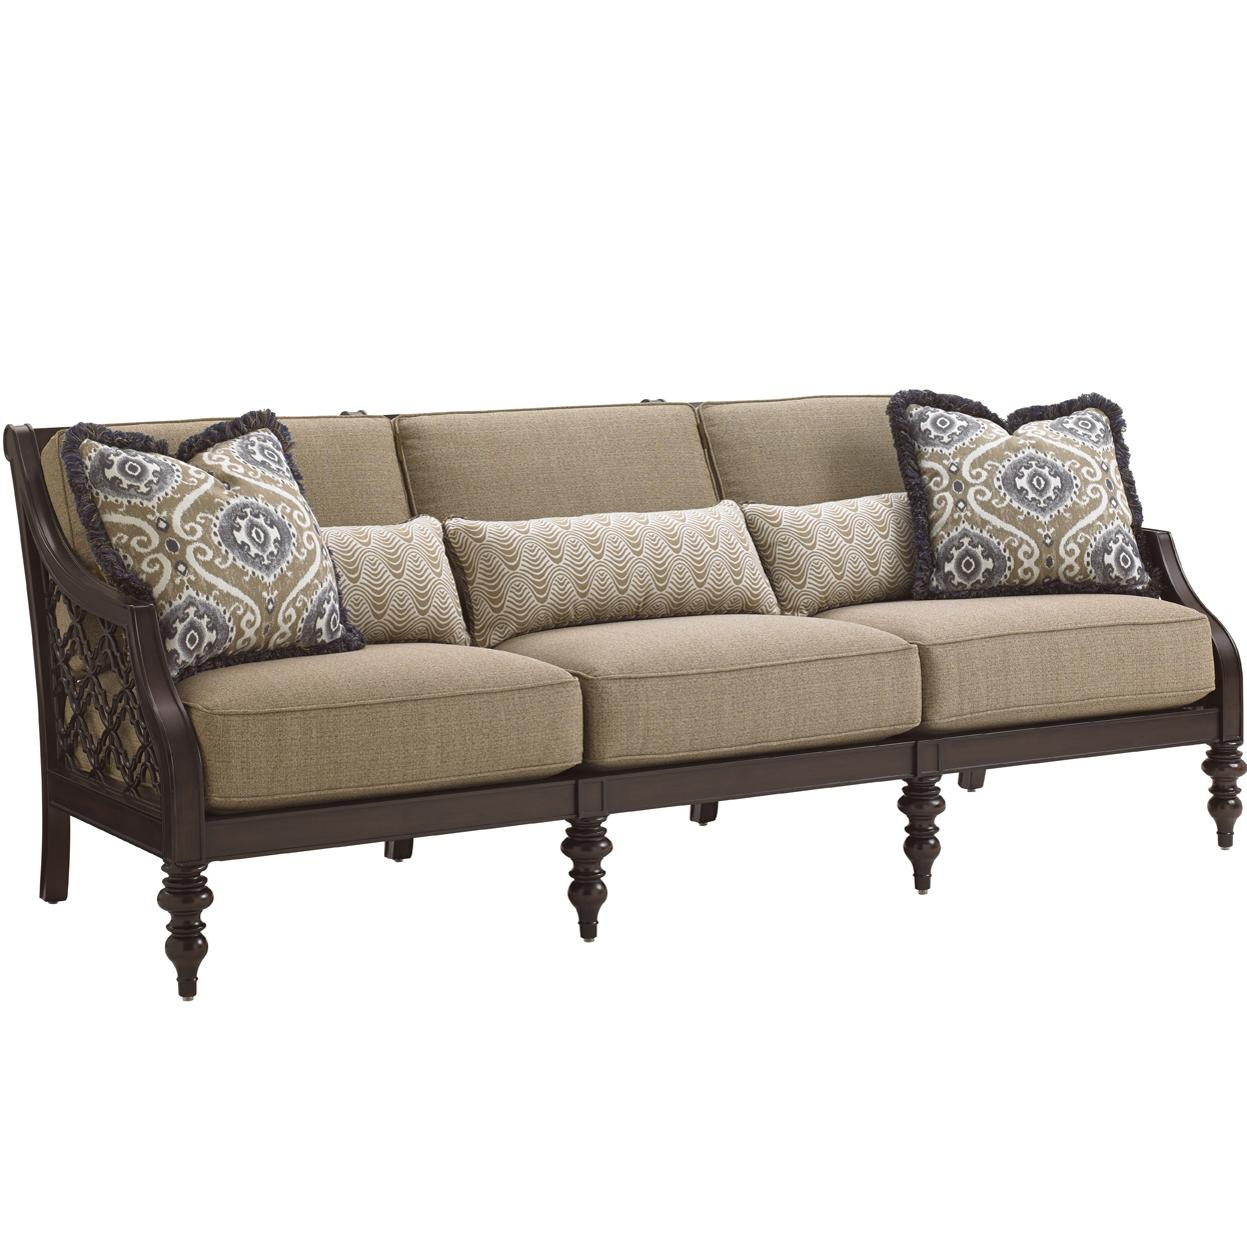 Black Sands Outdoor Sofa by Tommy Bahama Outdoor Living at Baer's Furniture